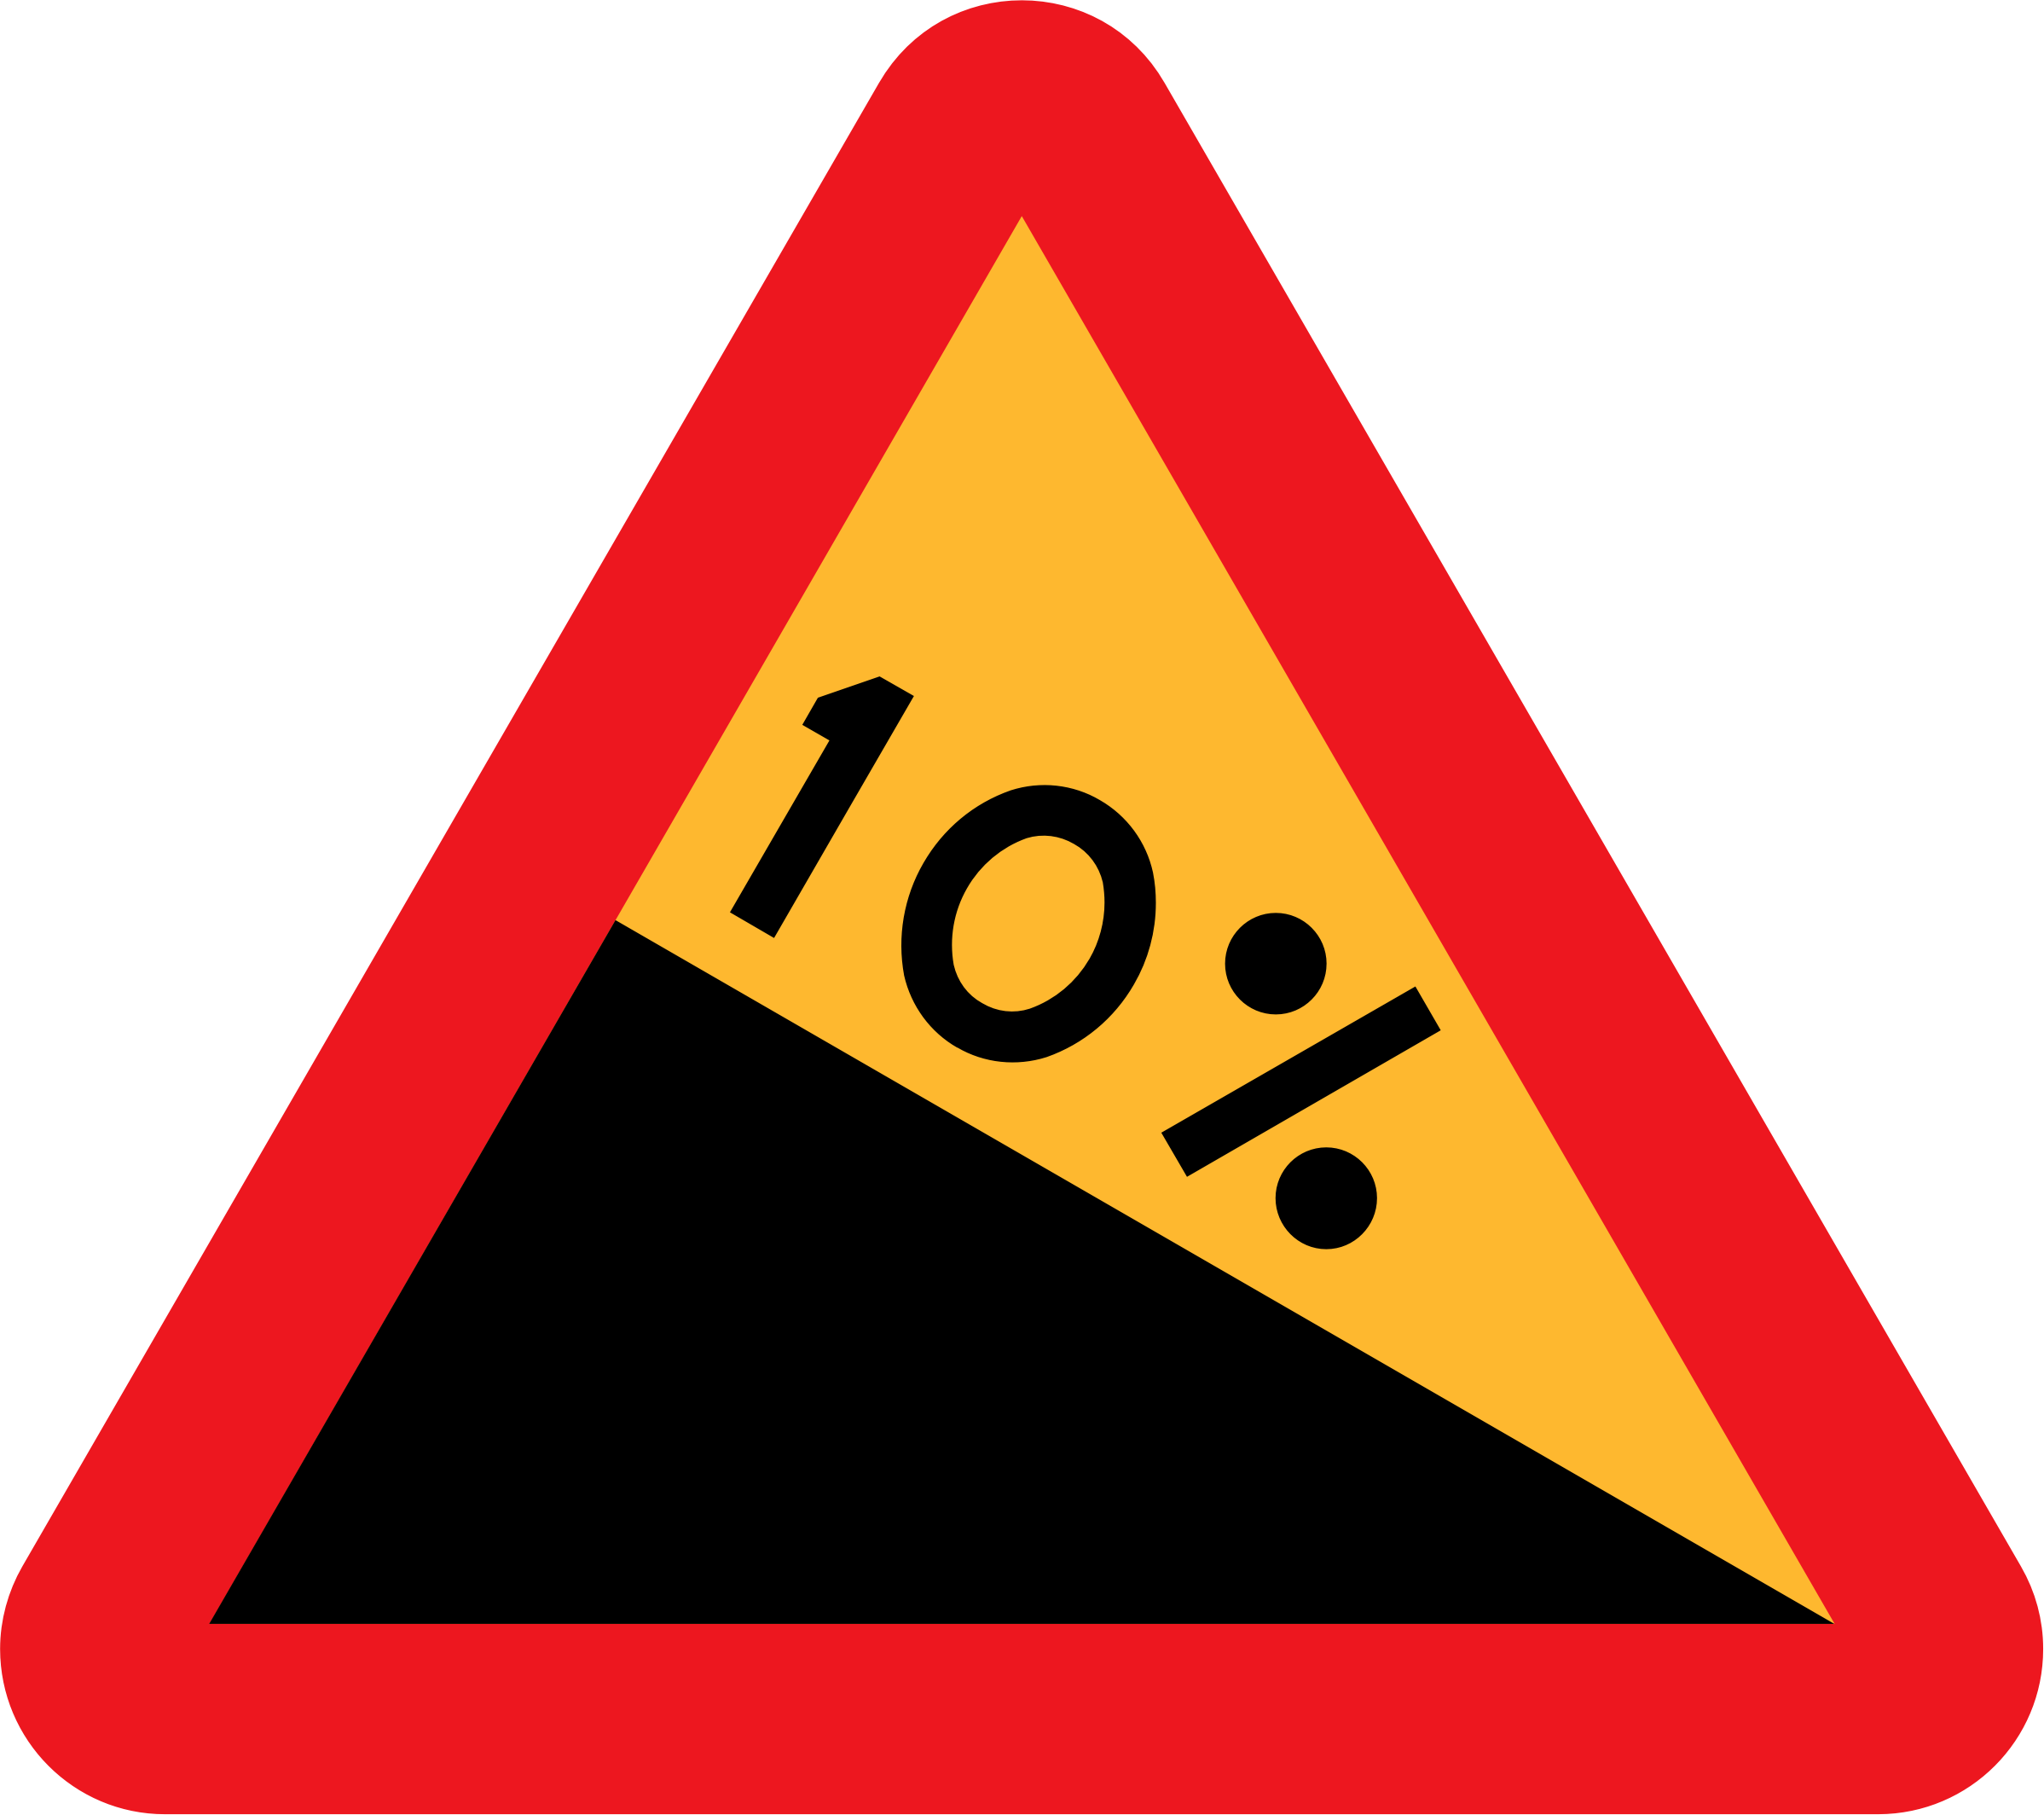 10% downward gradient roadsign by ryanlerch